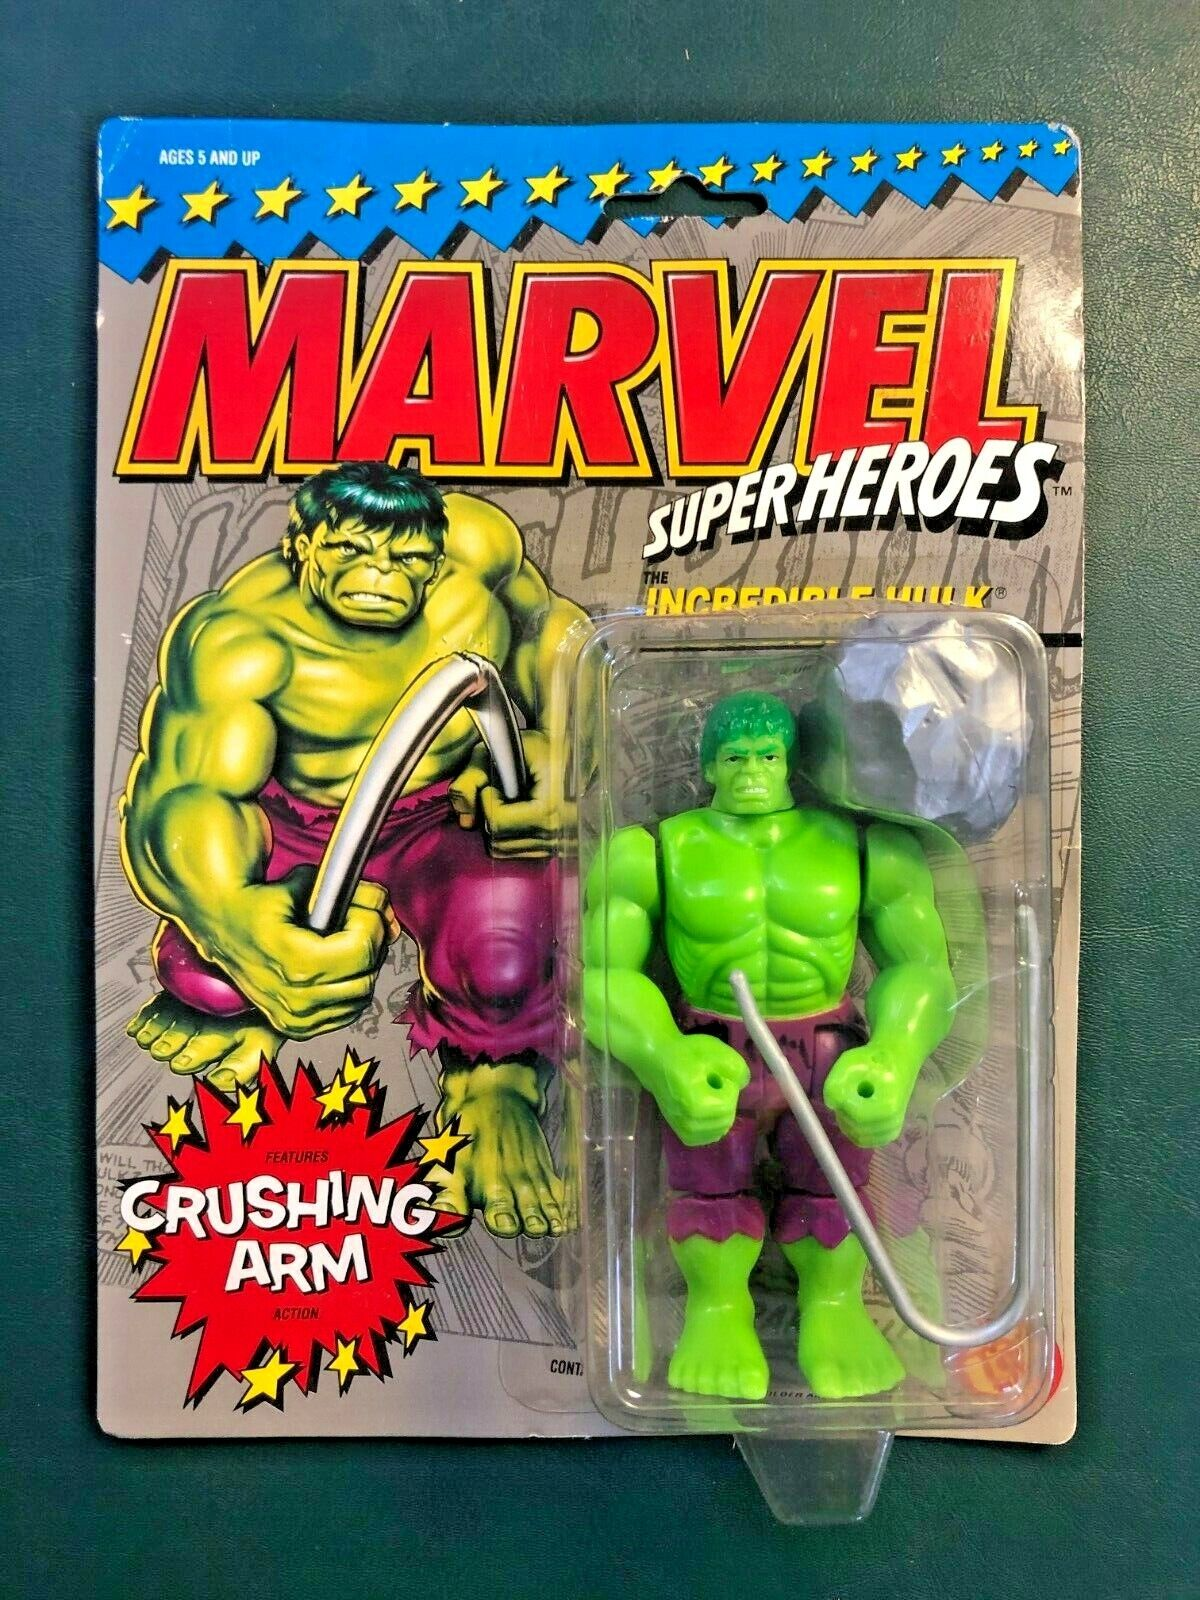 1990 Toy Biz Marvel Super Heroes INCREDIBLE HULK With Crushing Arm Moc - $29.99